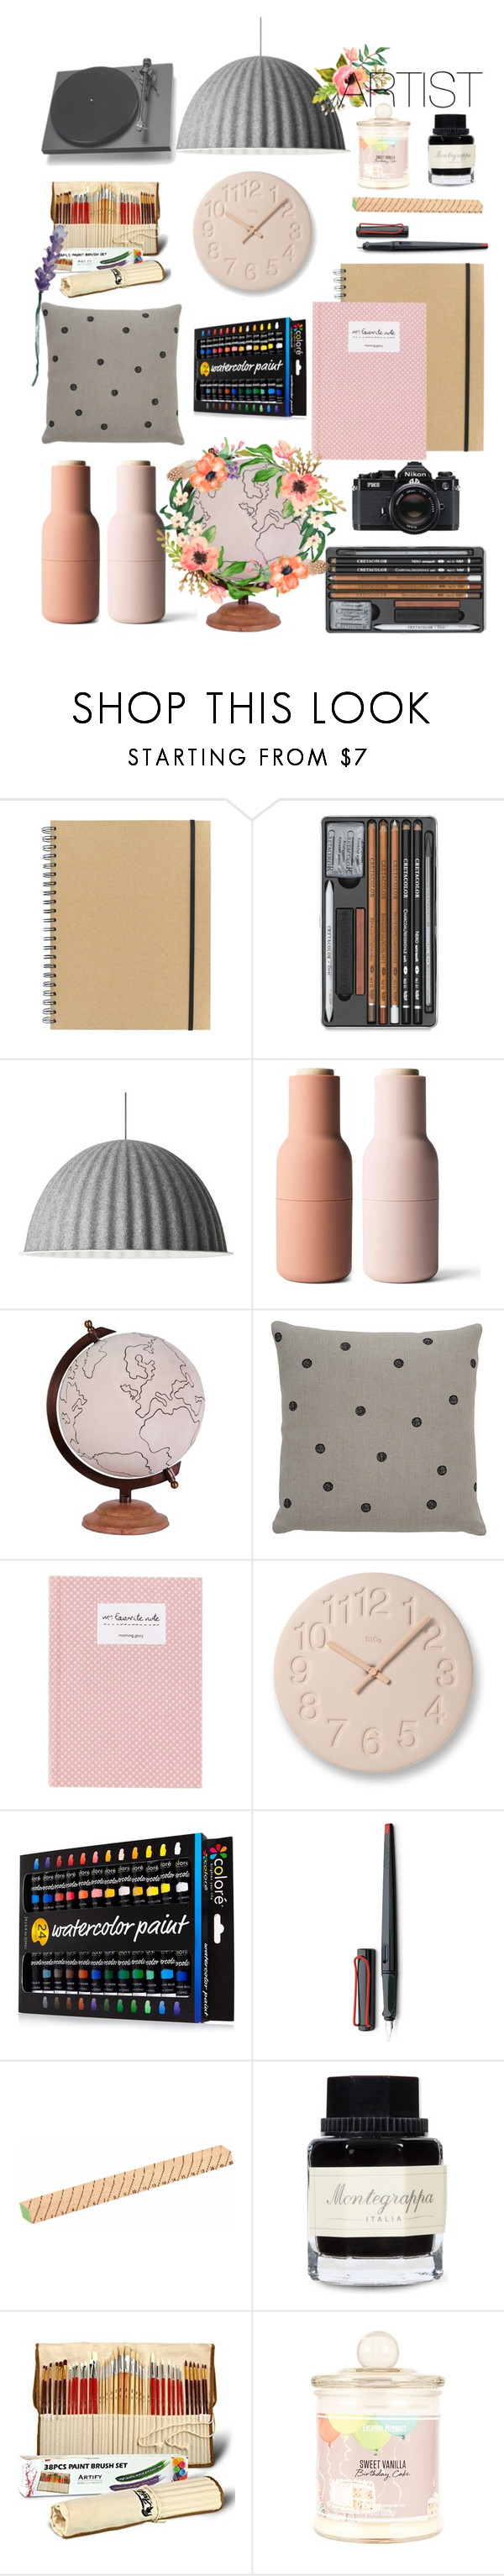 """Blue Moon - Al Bowlly 🎼"" by klmkarine on Polyvore featuring interior, interiors, interior design, home, home decor, interior decorating, Paperchase, Muuto, Menu and Jamie Young"